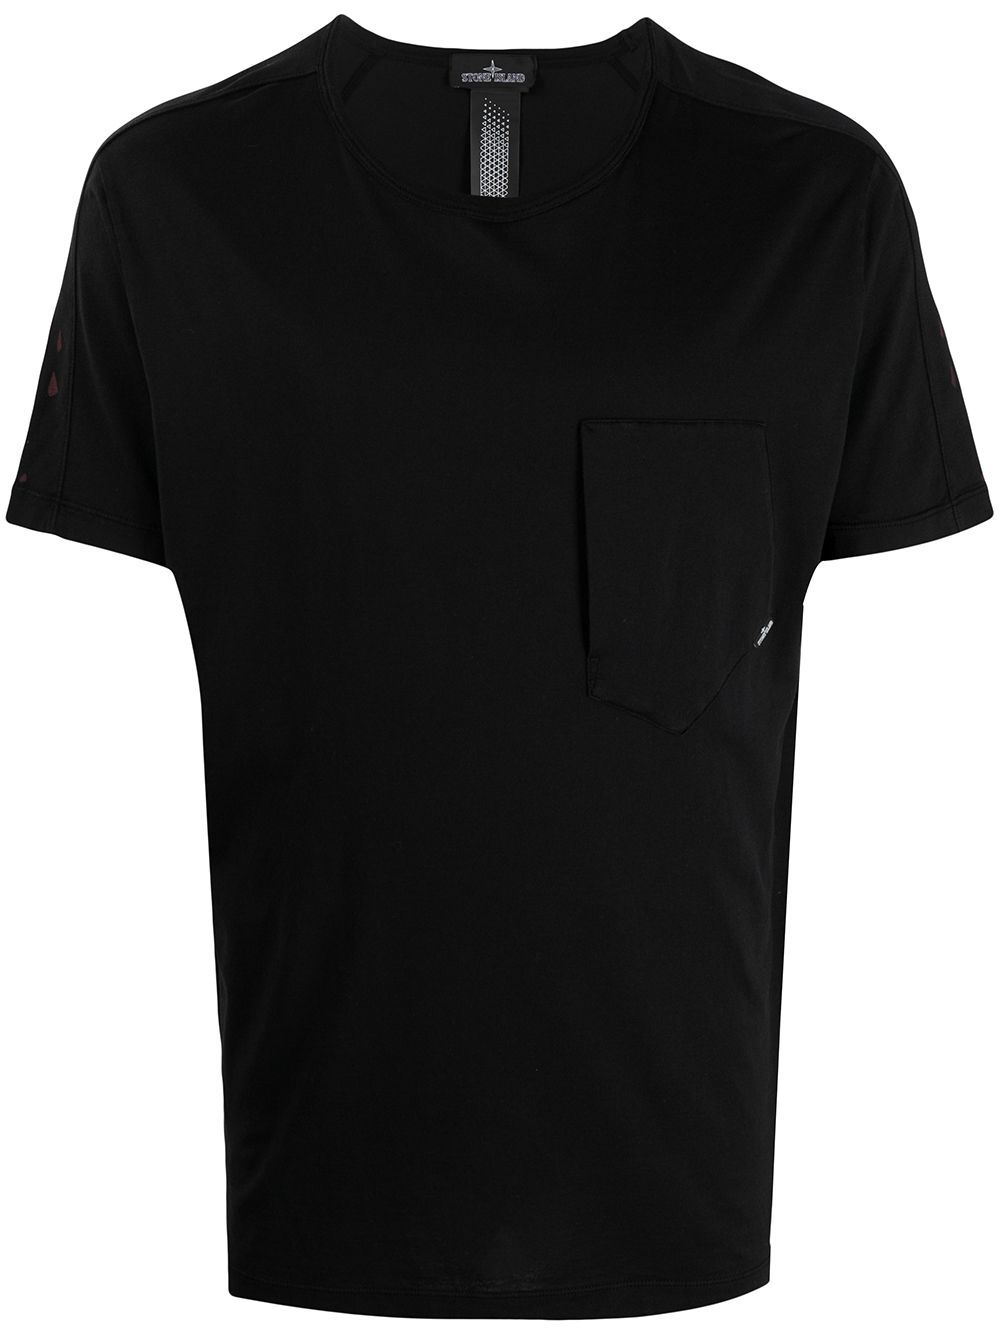 Stone Island Shadow Project STONE ISLAND SHADOW PROJECT MEN'S 741920610V0029 BLACK COTTON T-SHIRT